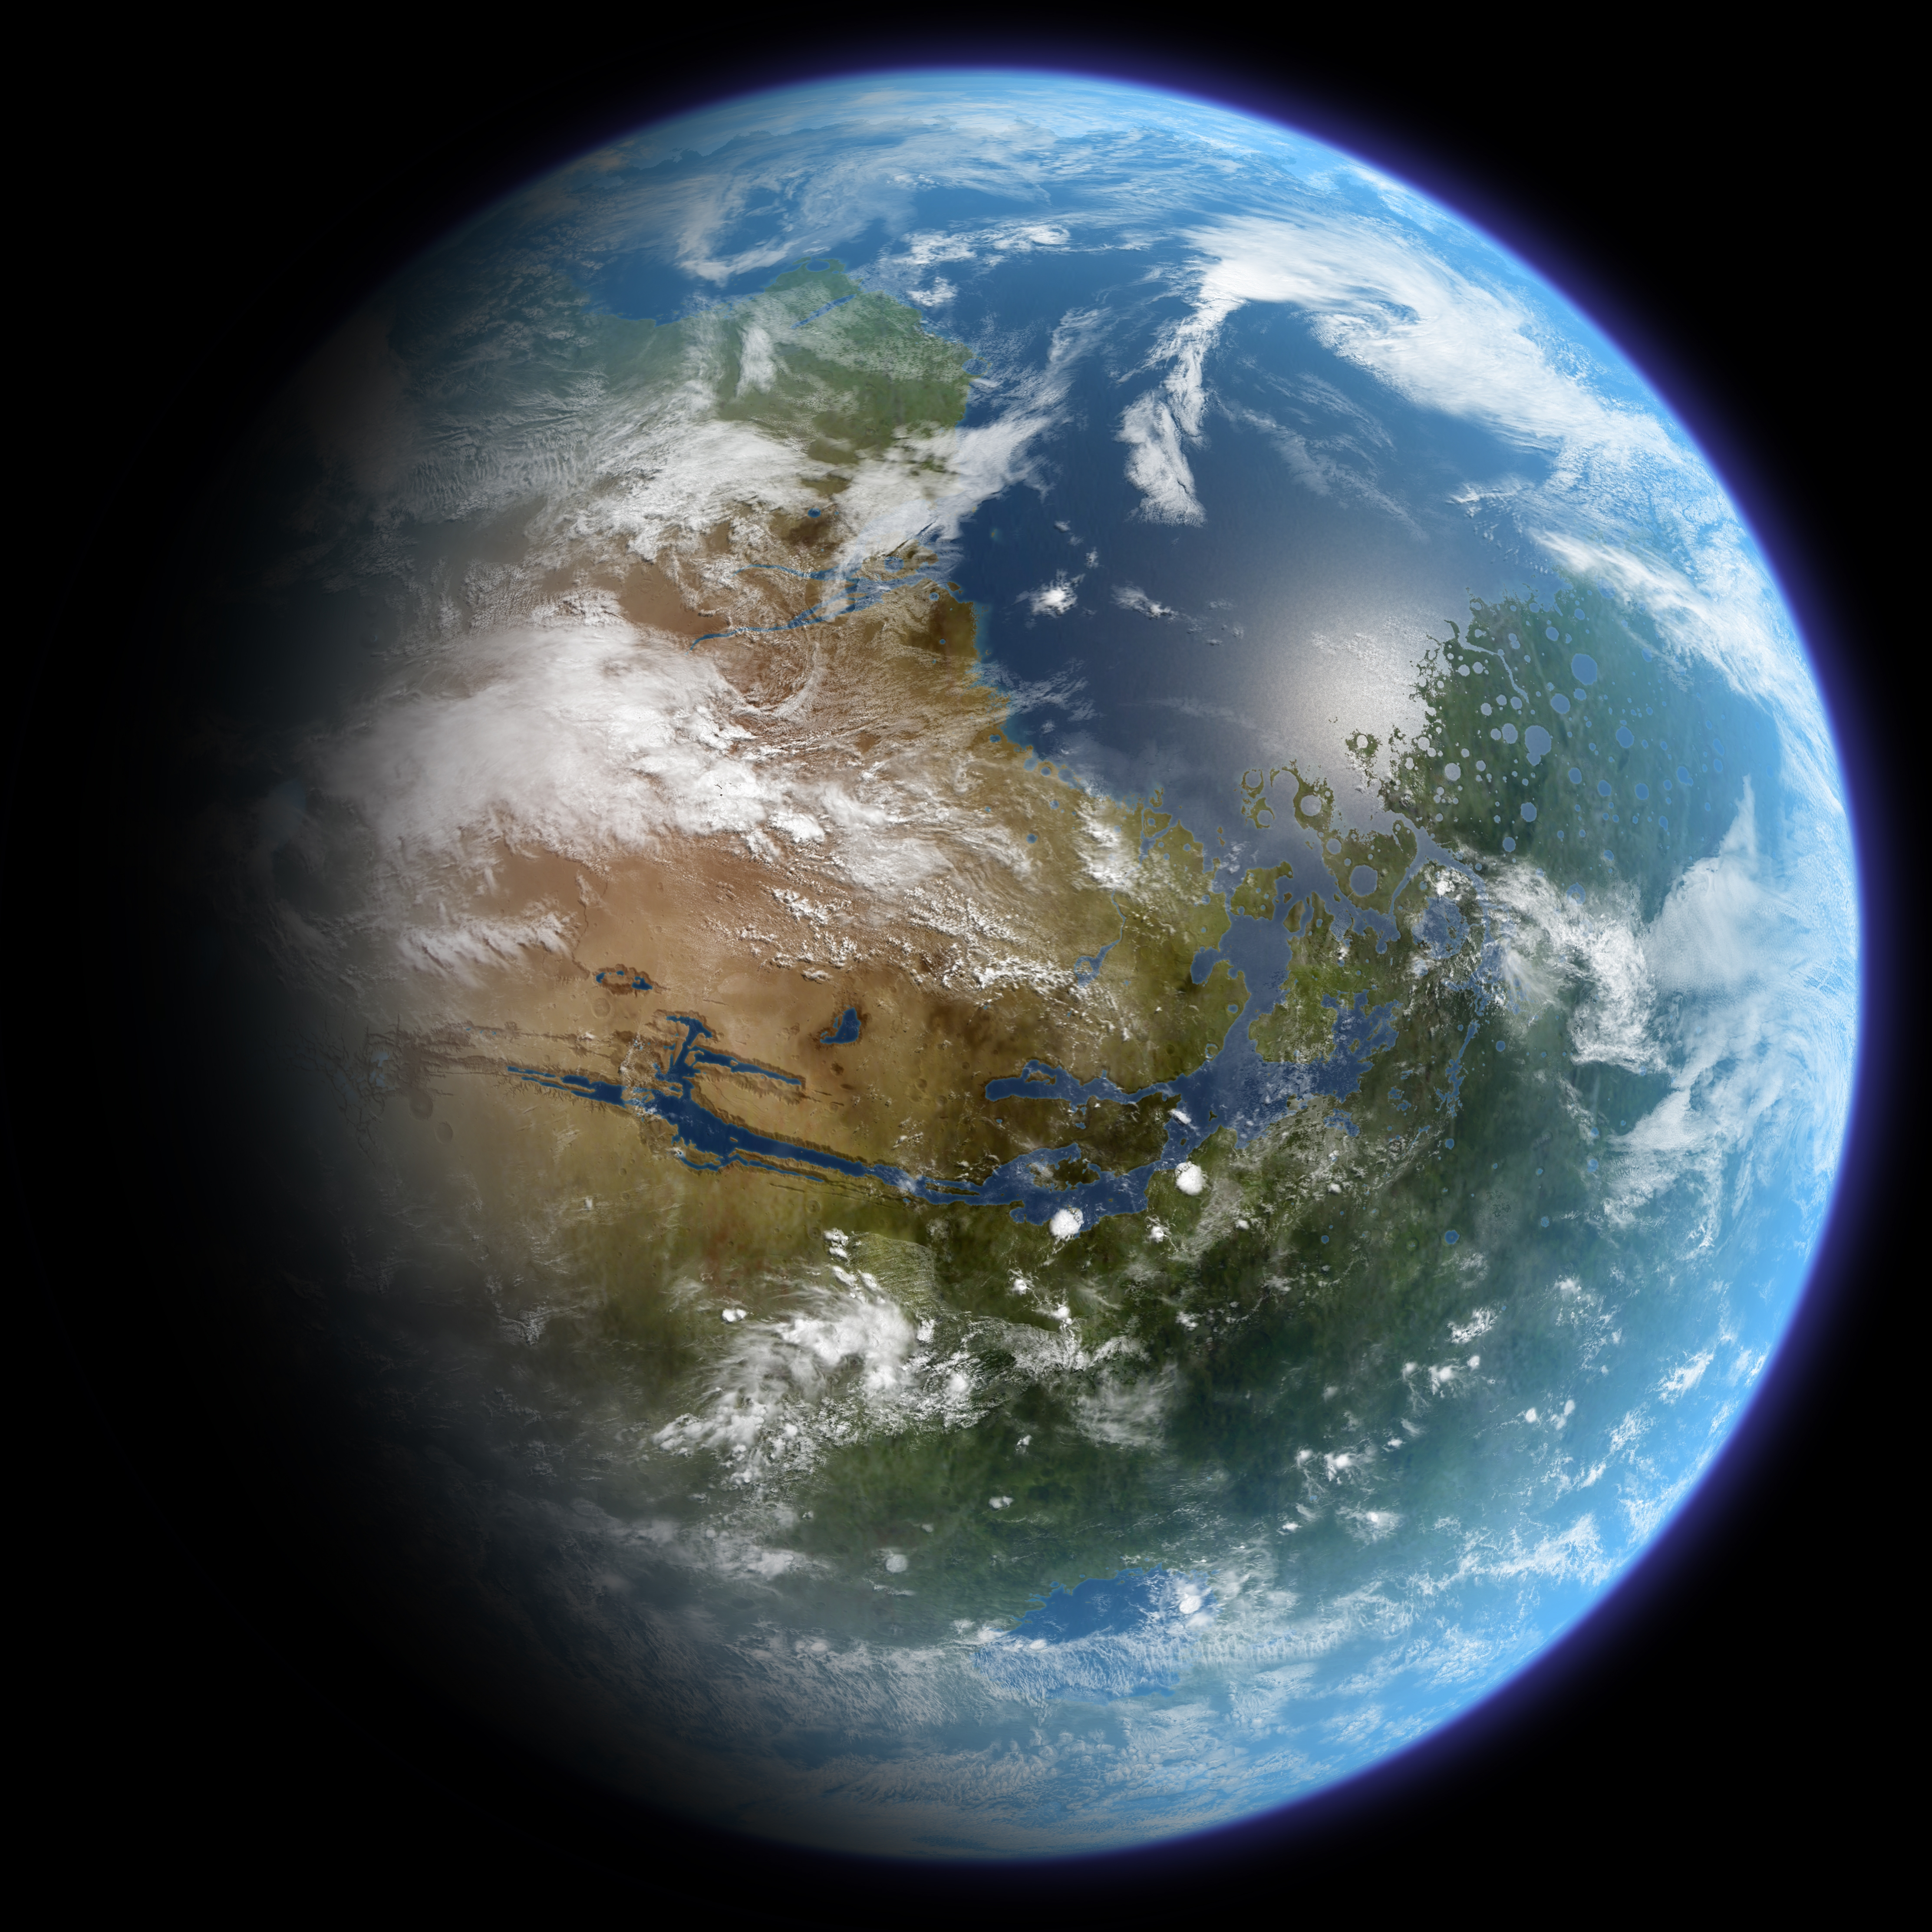 Blue Earth and Green Mars